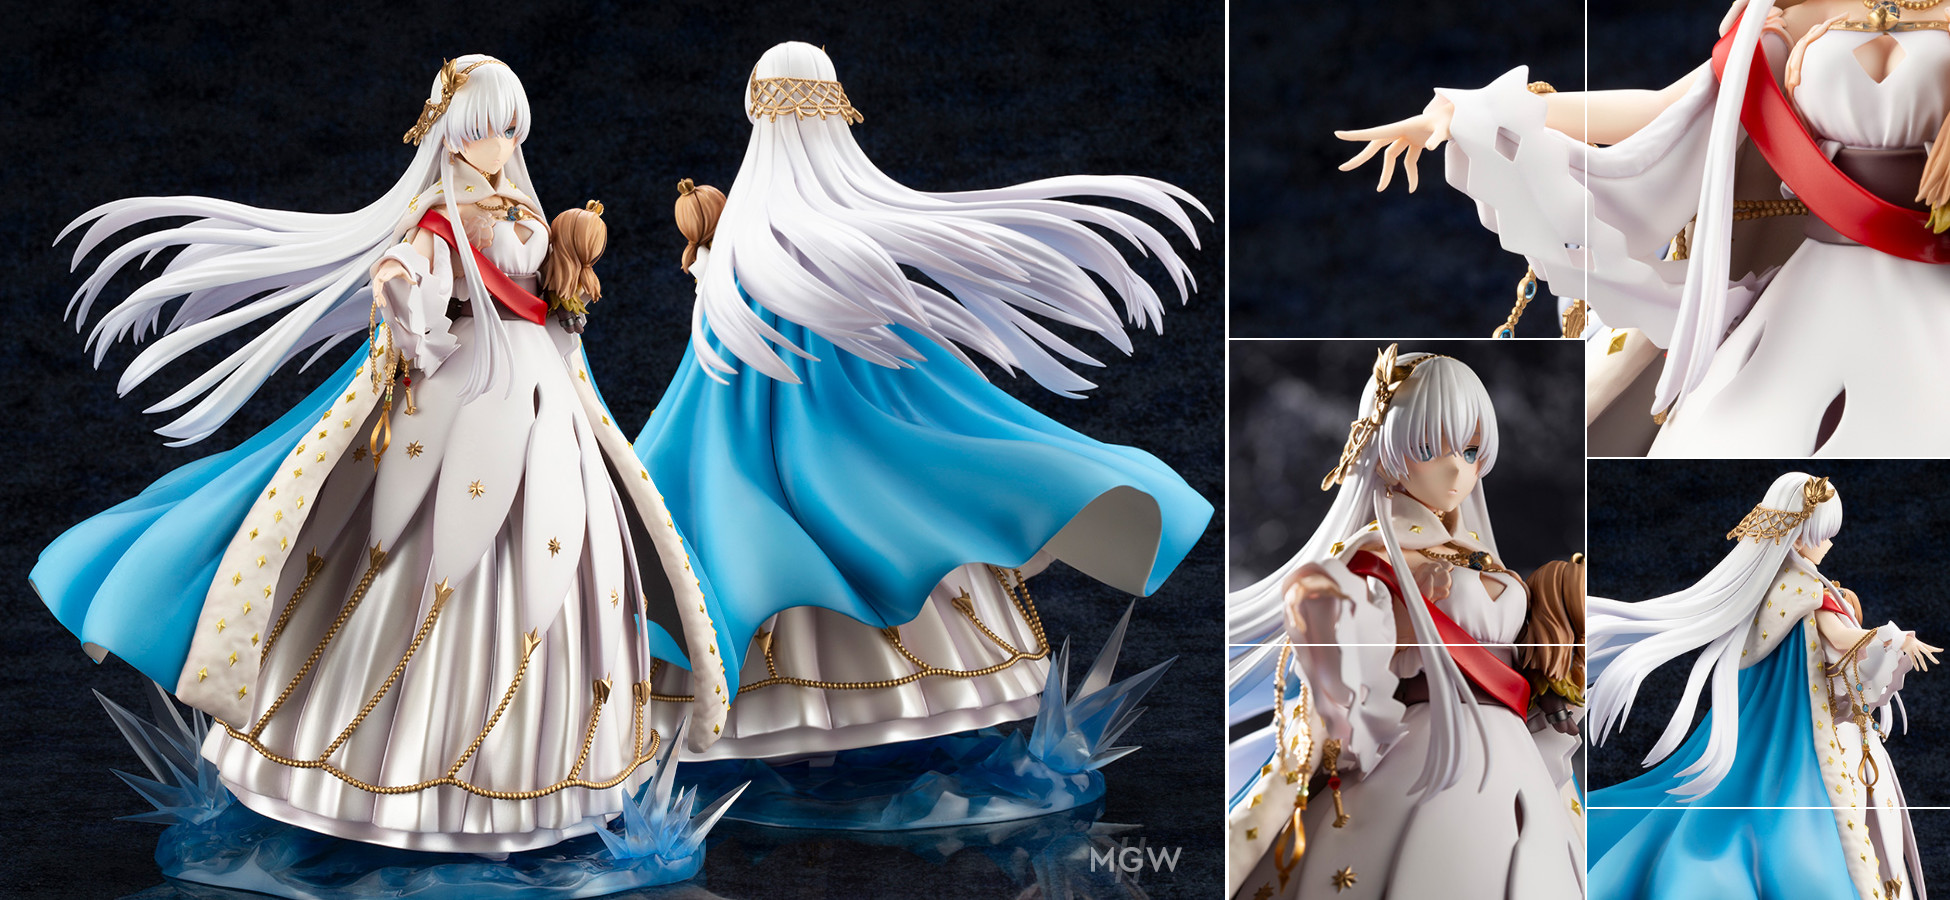 Caster/Anastasia by Kotobukiya from Fate/Grand Order MyGrailWatch Anime Figure Pre-order Guide